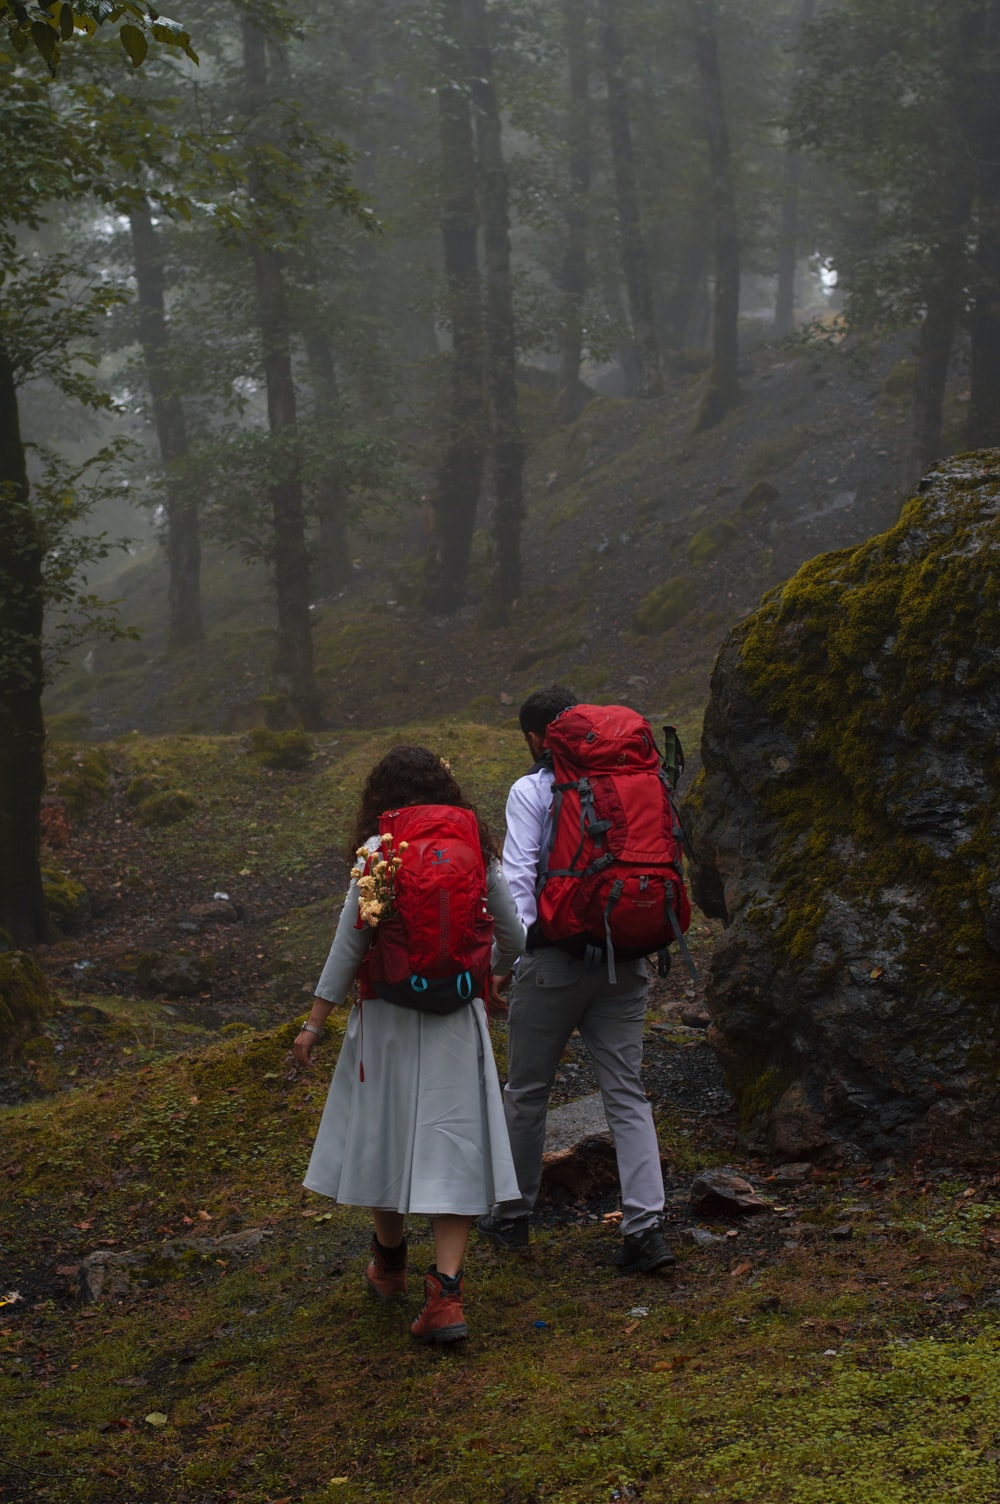 couple in red and black jackets walking on pathway